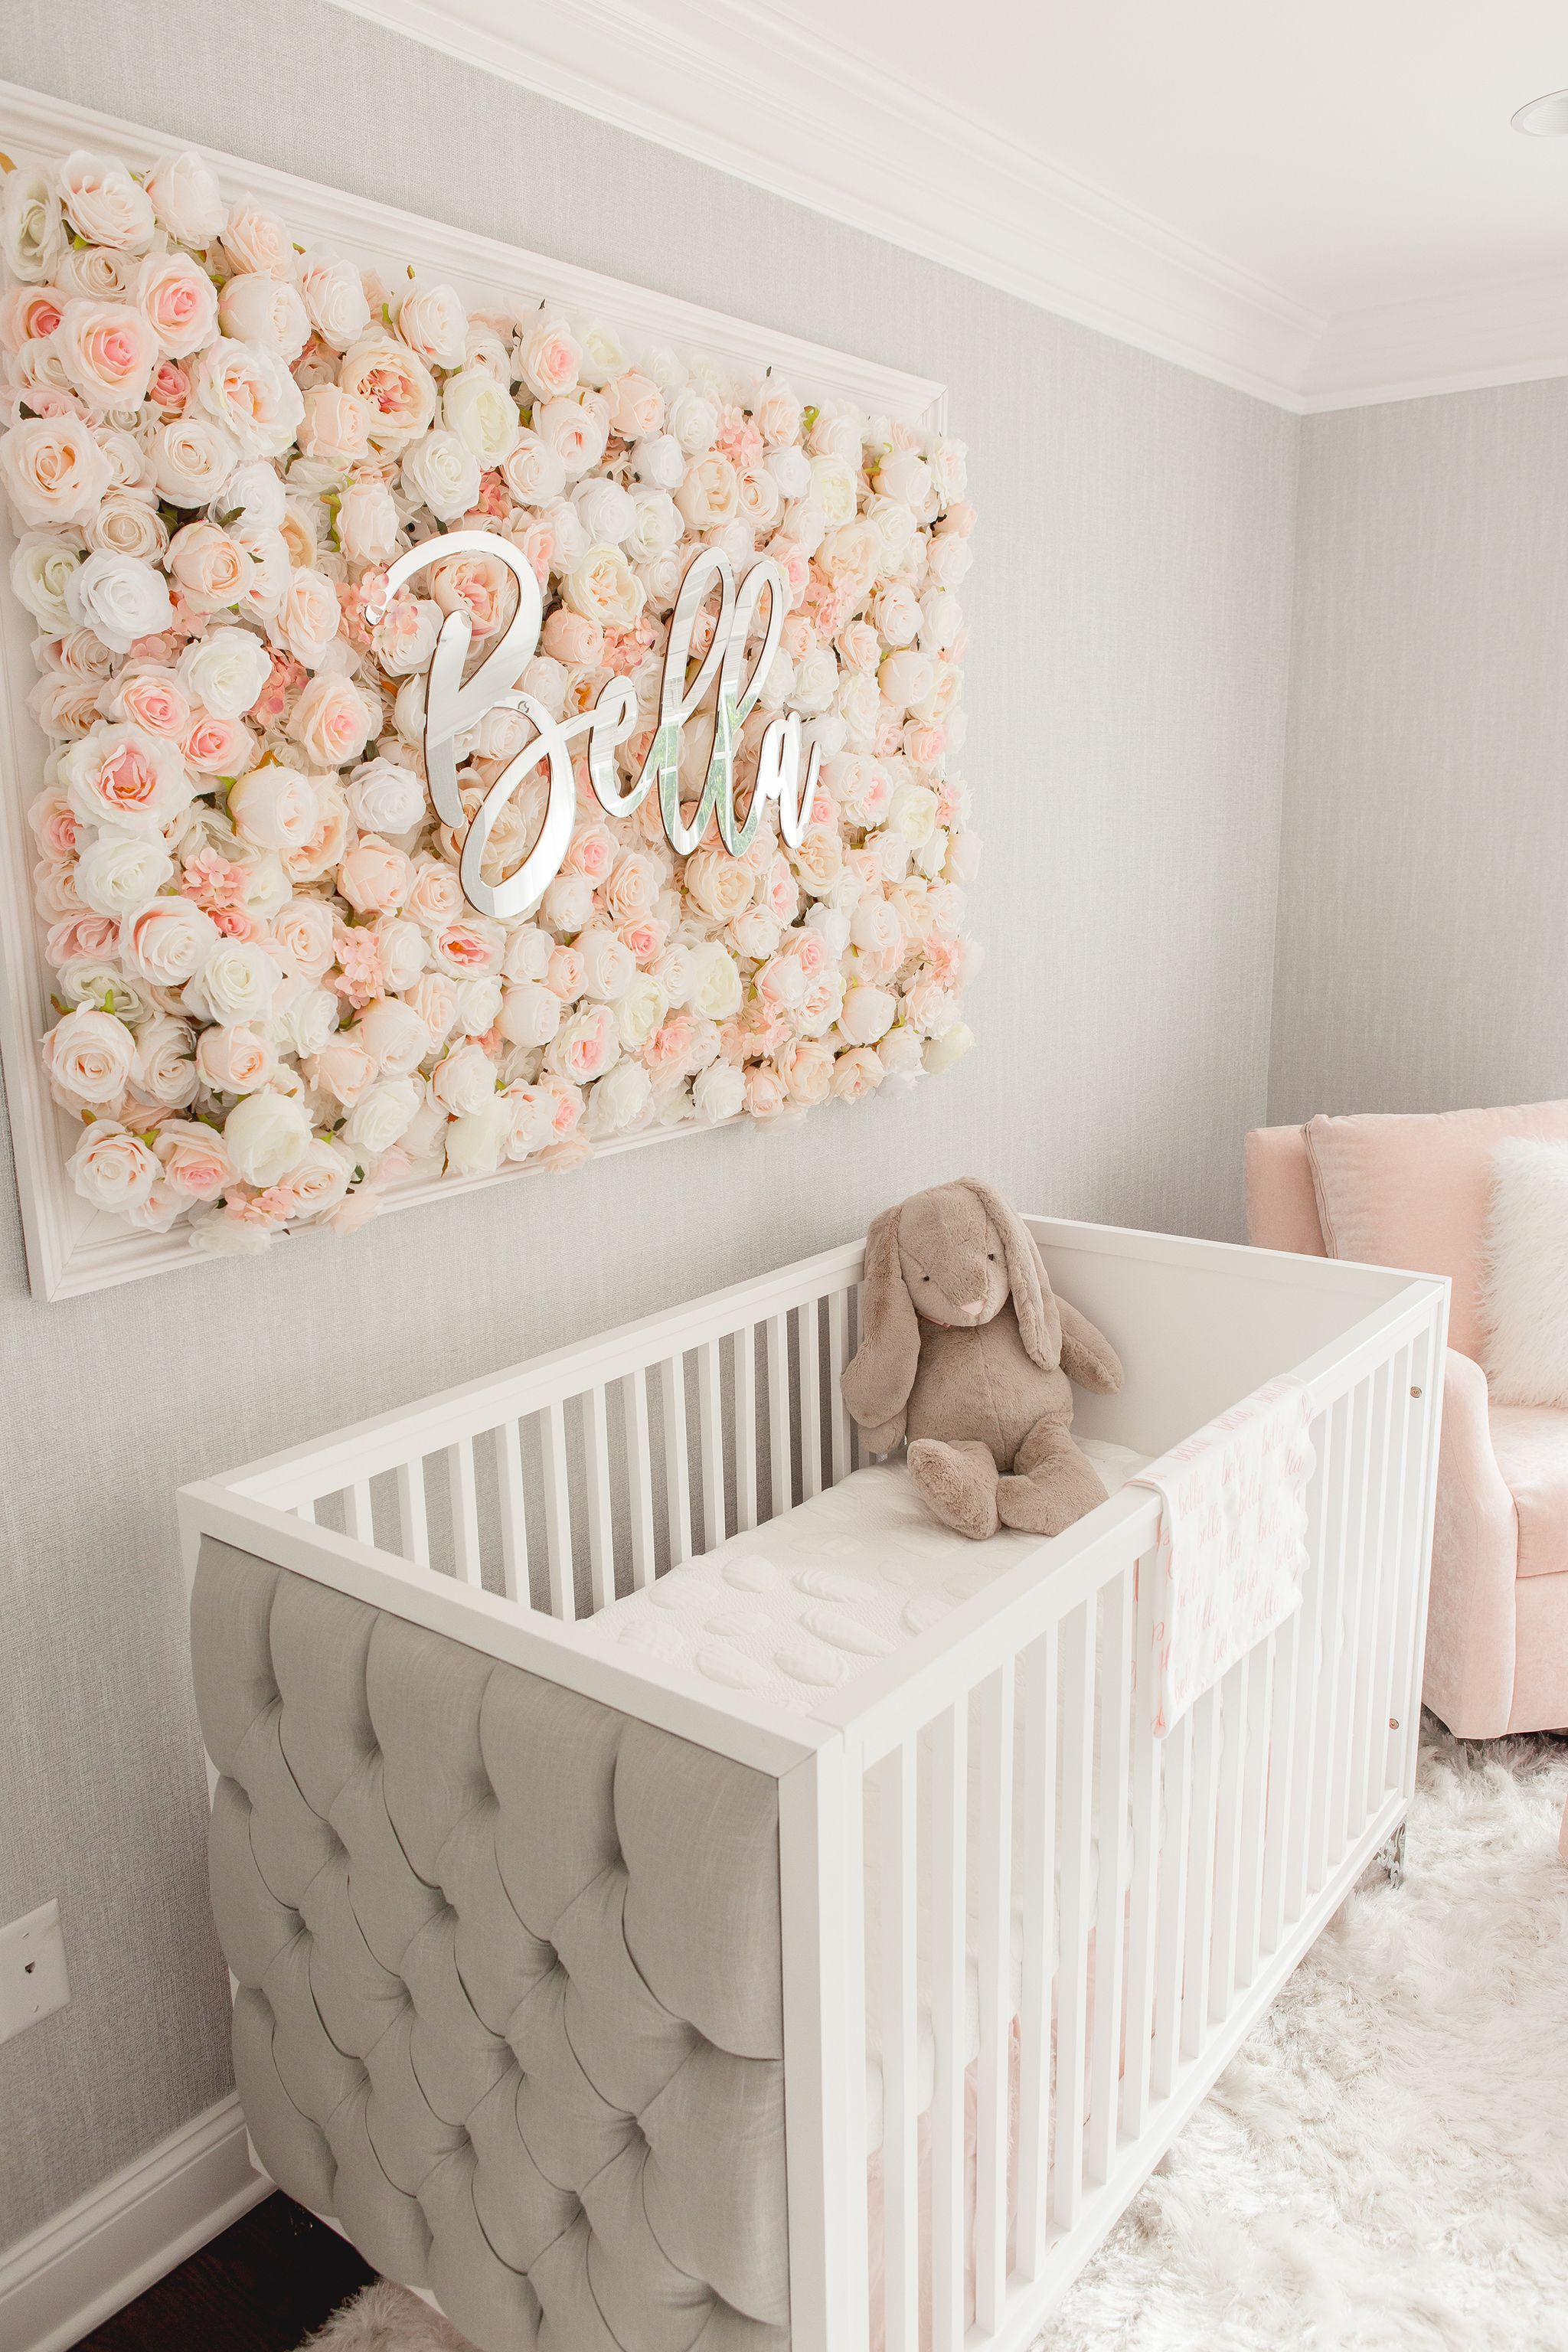 Guess Which Celebrity Nursery Inspired This Gorgeous Space Project Nursery Baby Nursery Inspiration Baby Girl Nursery Room Girl Nursery Room